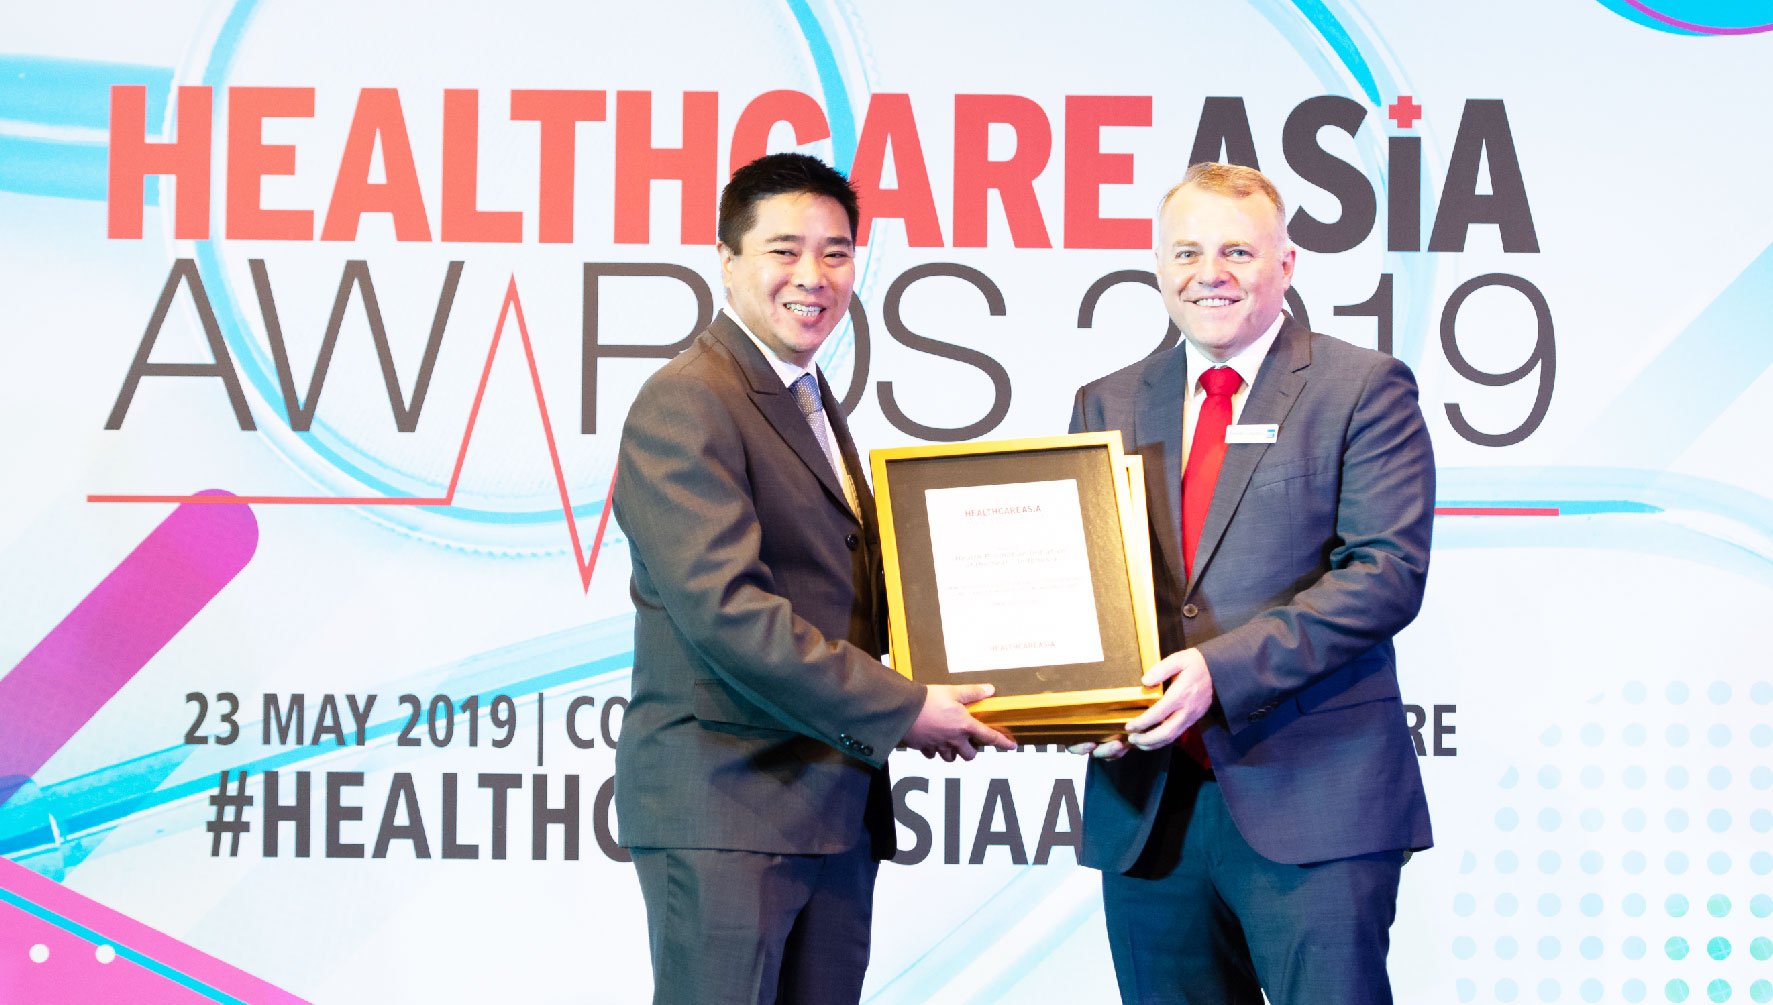 Heatlthcare Asia Award 2019